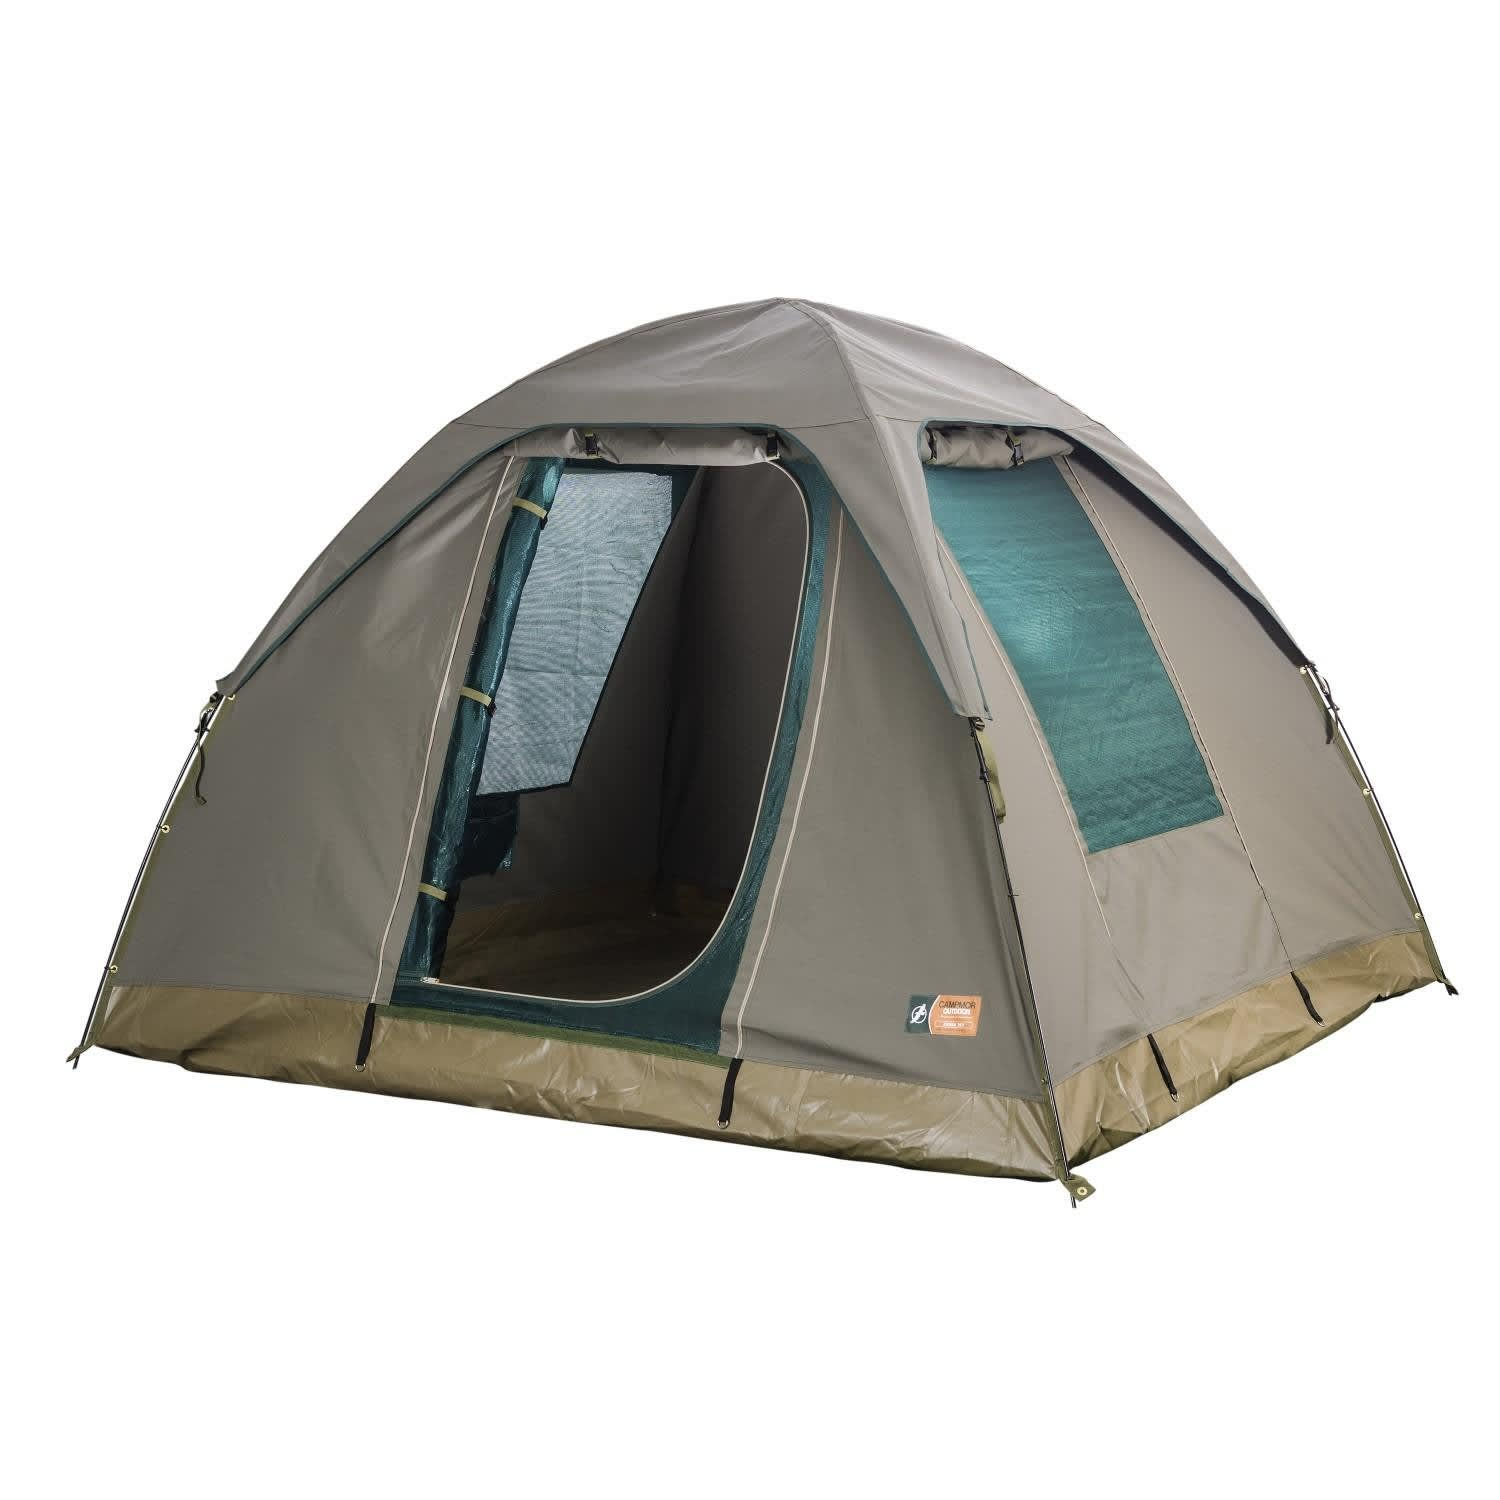 Campmor Sierra 5-person Canvas Dome Tent | Outdoor Warehouse